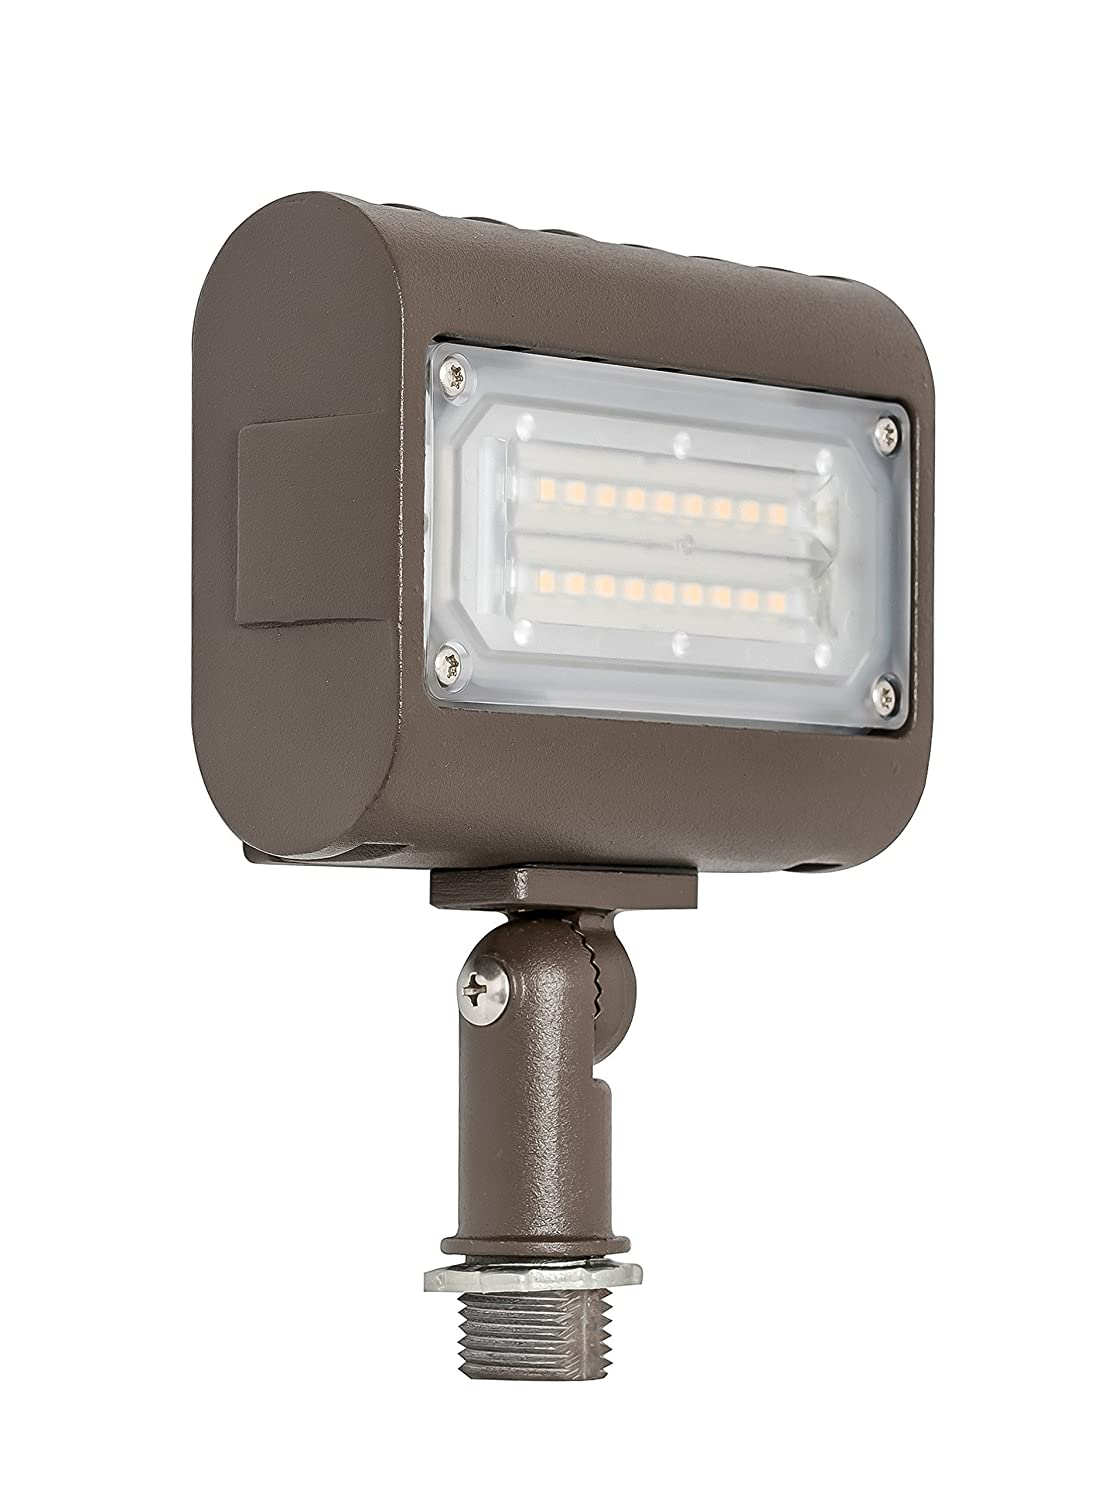 westgate 30 w led flood light with knuckleマウント 100 w白熱交換